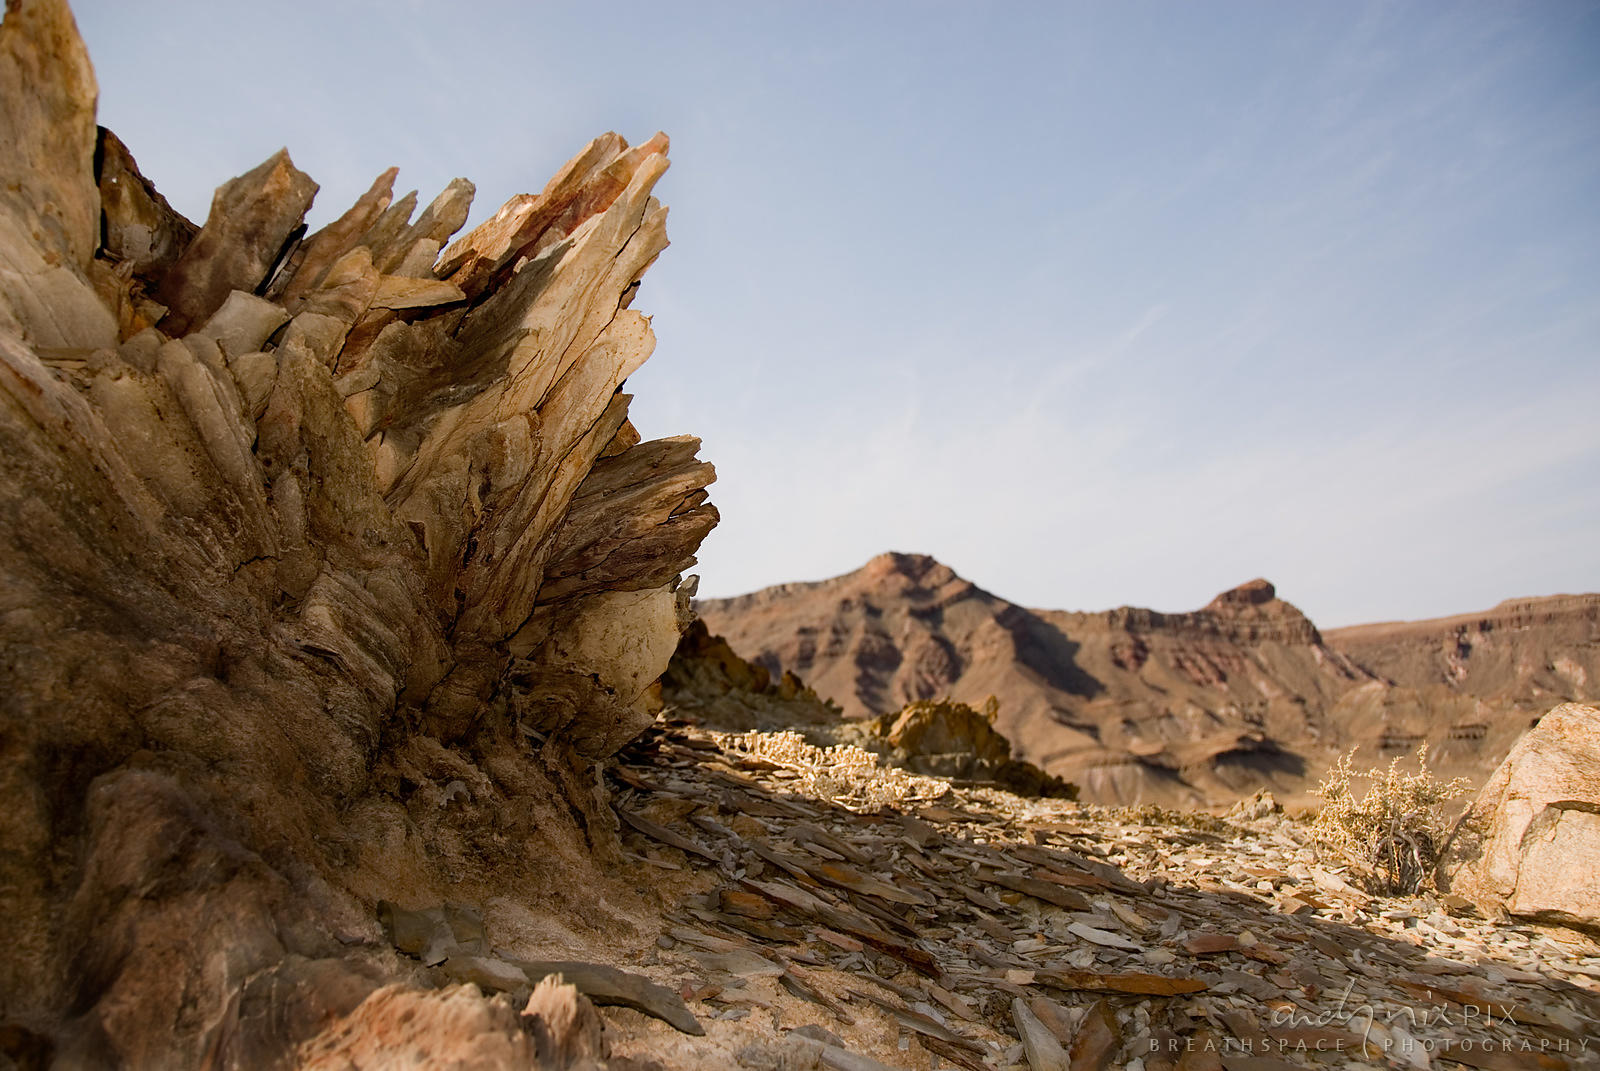 The Richtersveld is in the heart of the Succulent Karoo Biodiversity Hotspot, the only arid desert biodiversity hotspot, with over 4840 succulent plants, 40% of which are endemic.